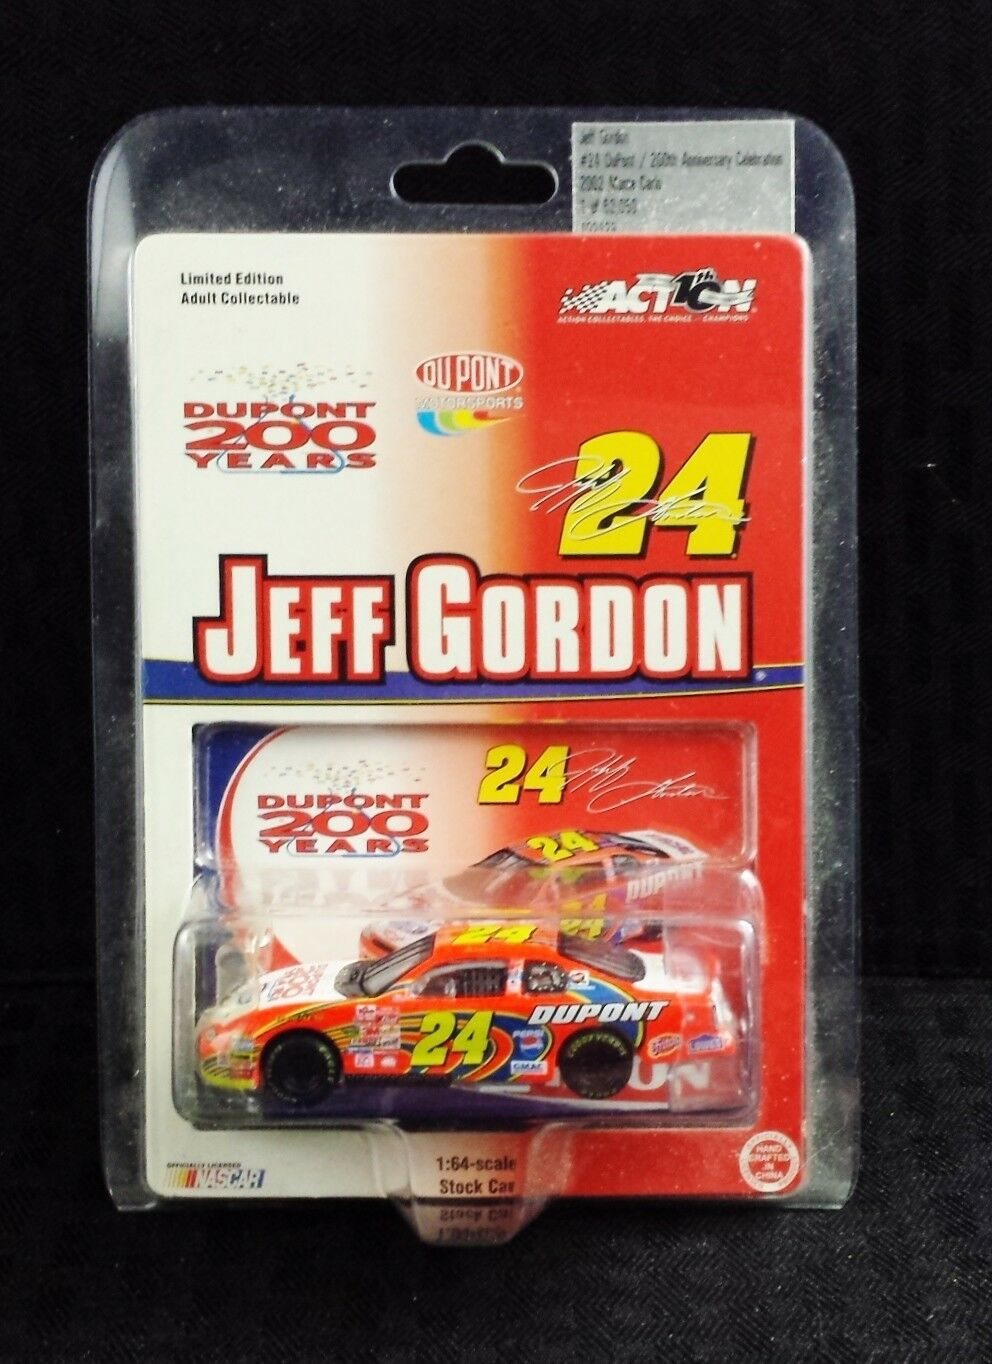 NEW COLLECTIBLE ACTION PERF. JEFF GORDON DUPONT 200TH ANNIV. 2002 MONTE CARLO